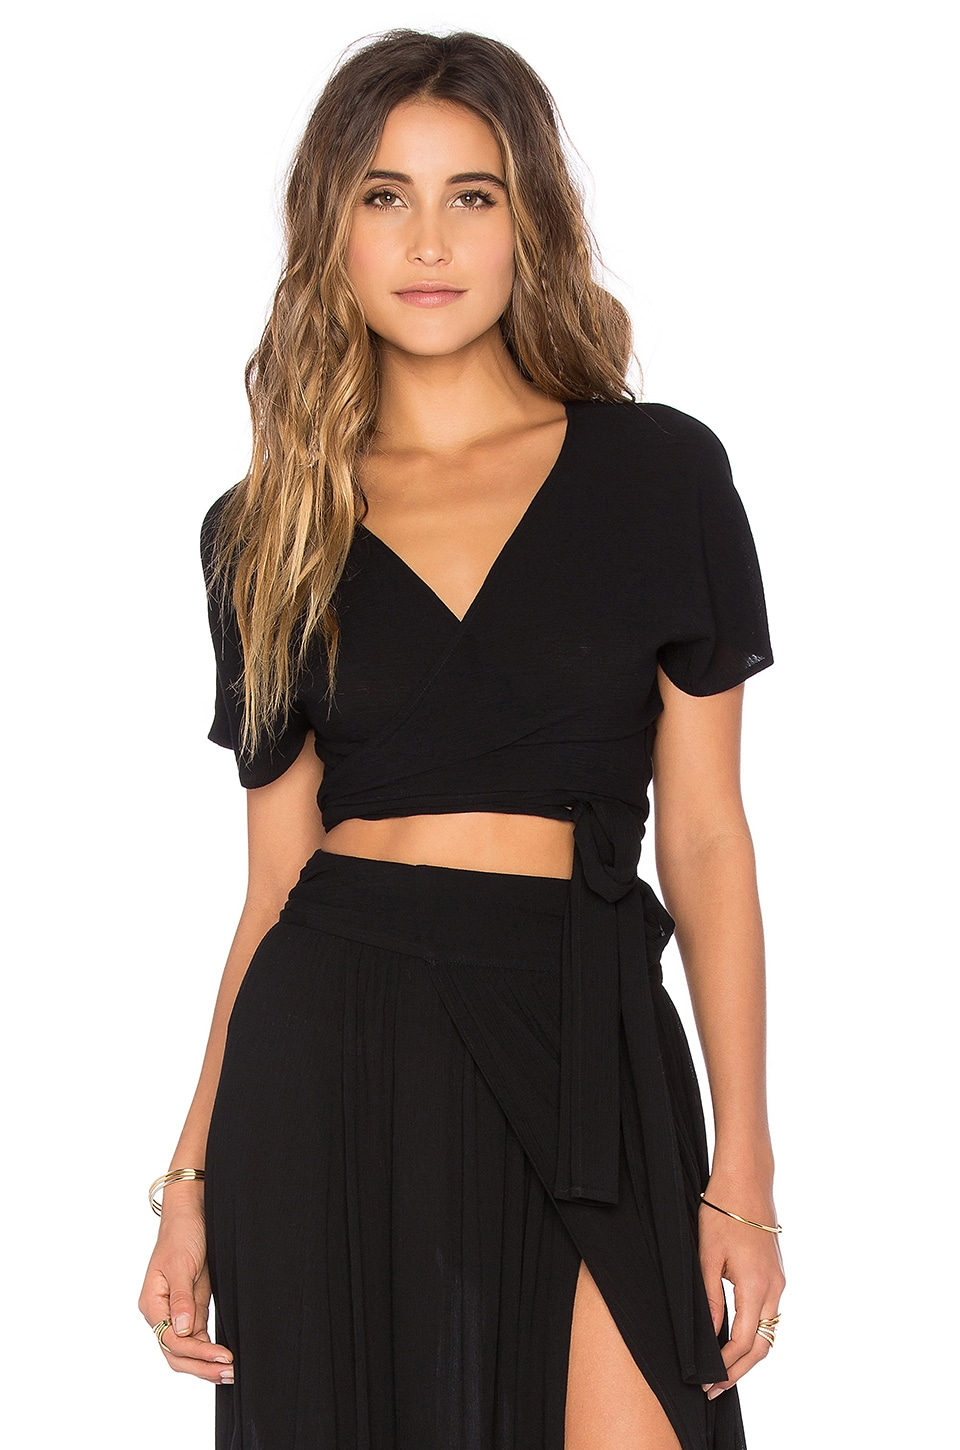 Wildfox Couture Short Sleeve Wrap Top in Black